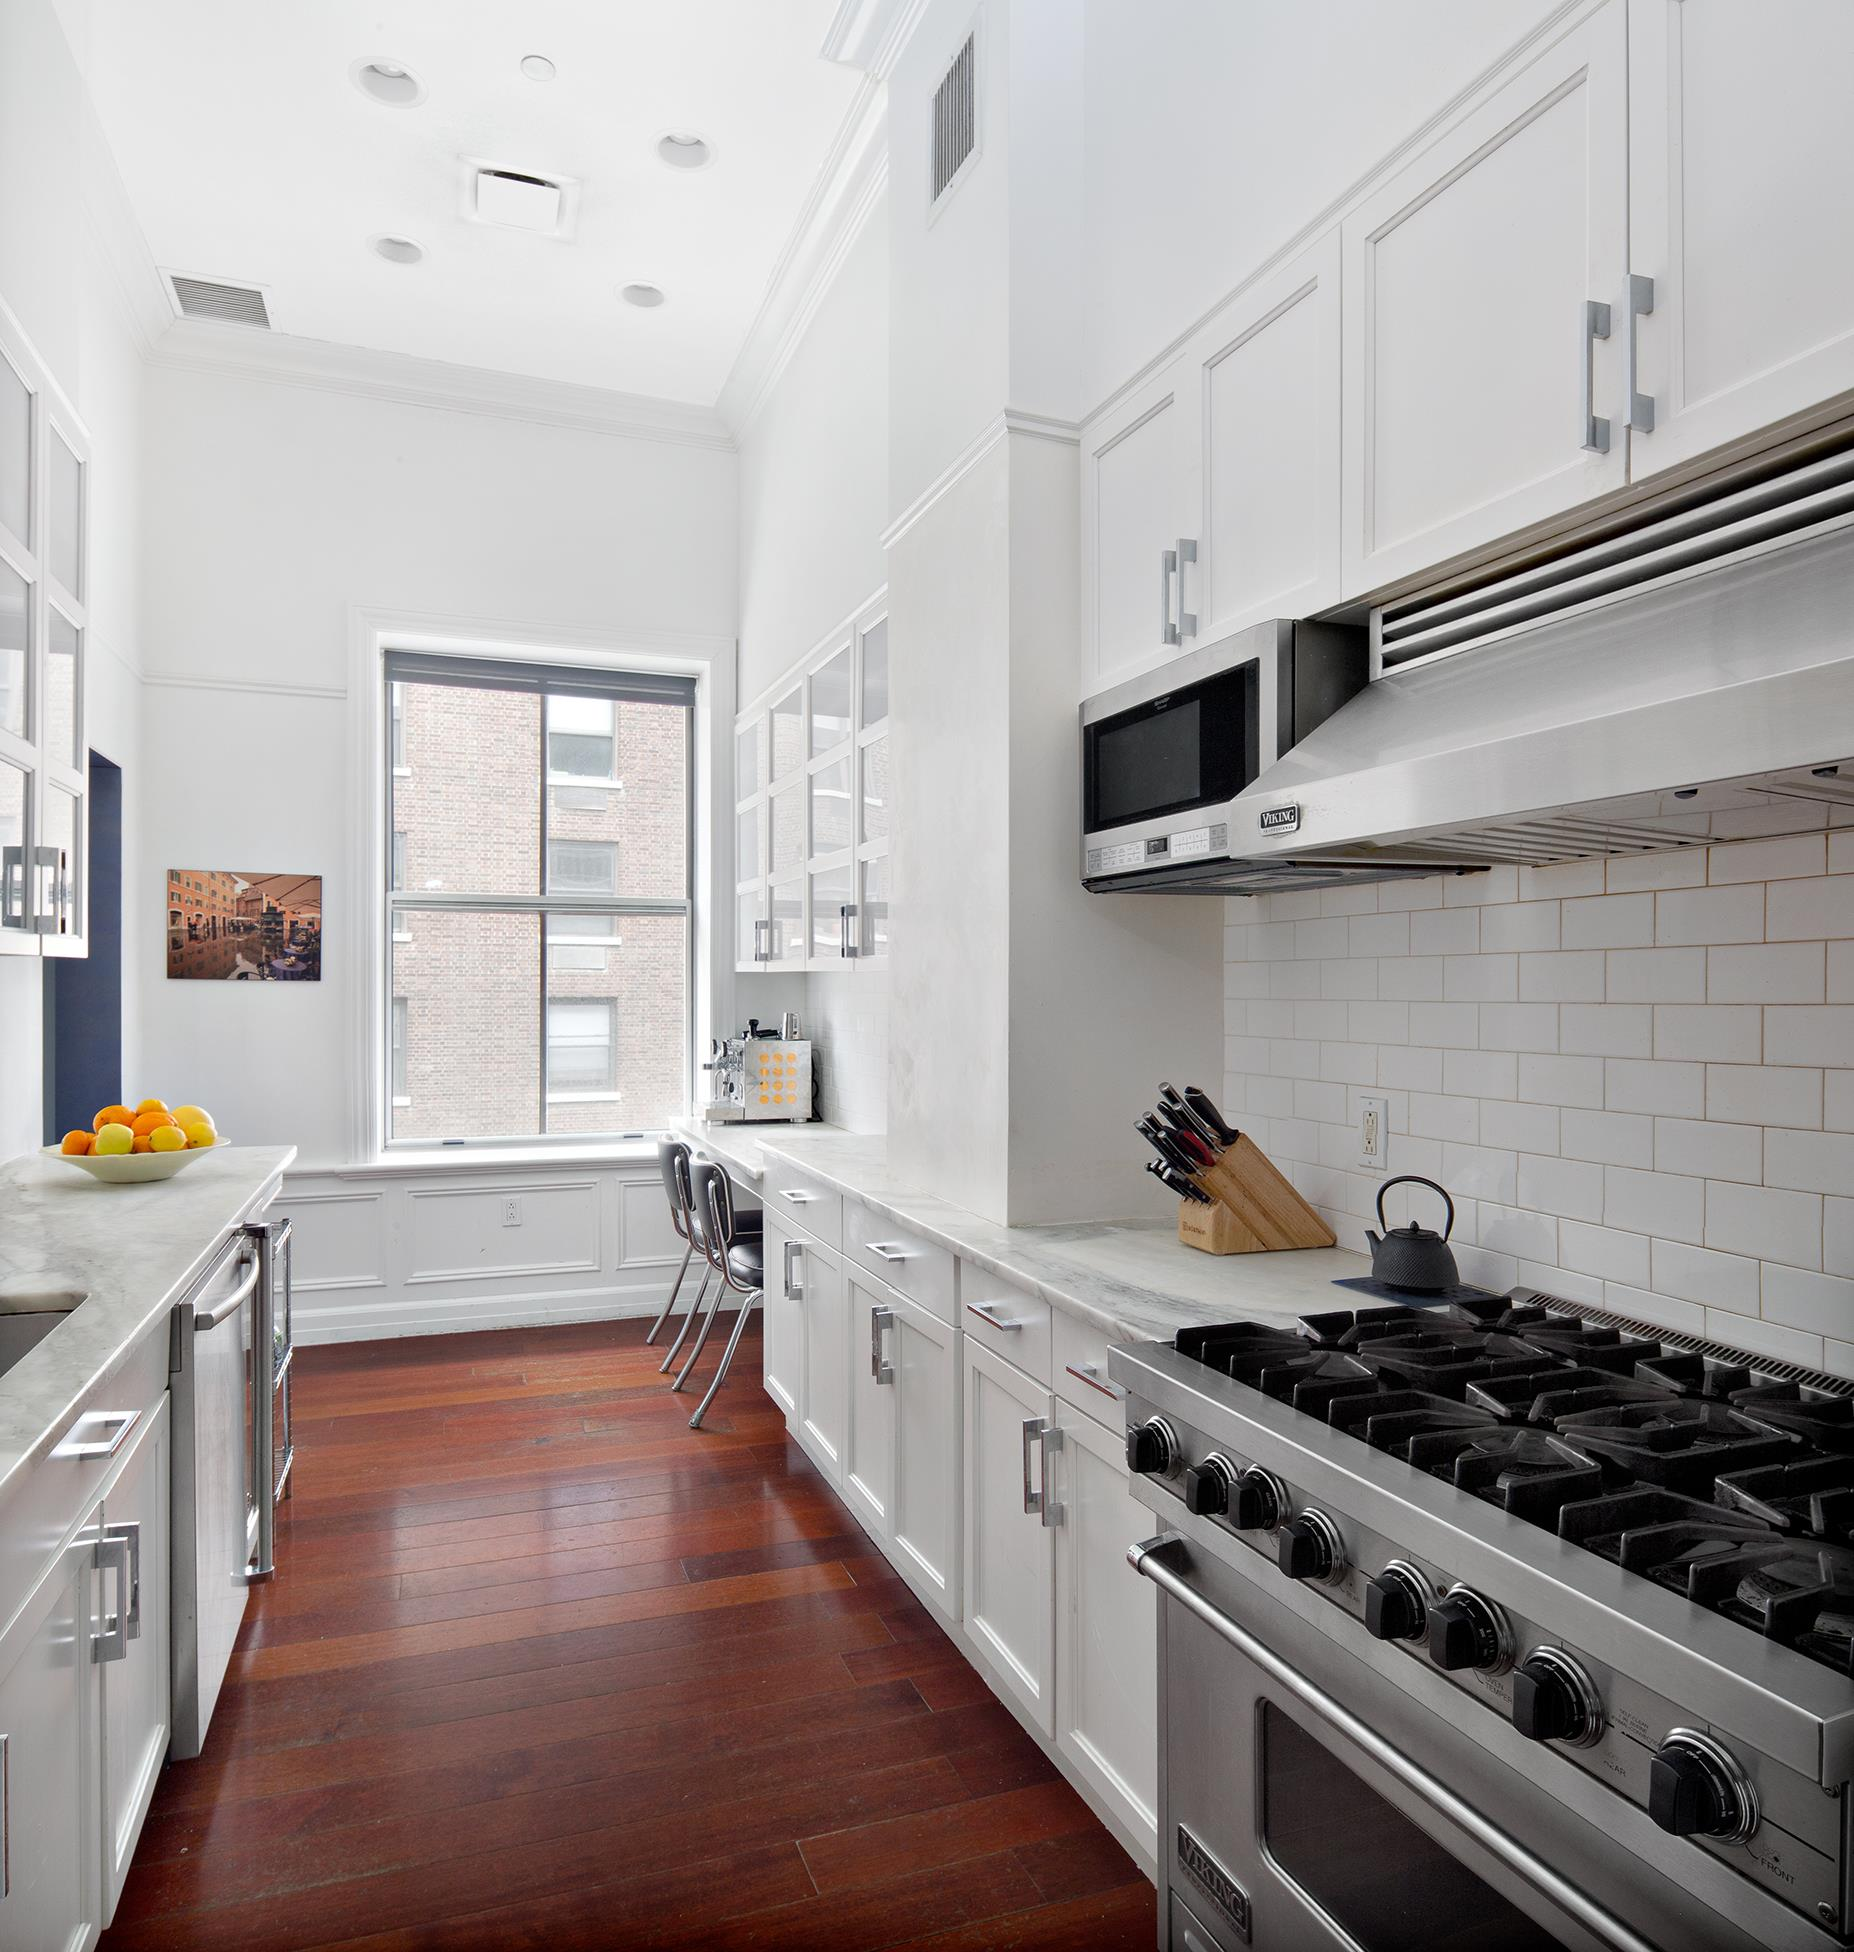 2112 Broadway Upper West Side New York NY 10023